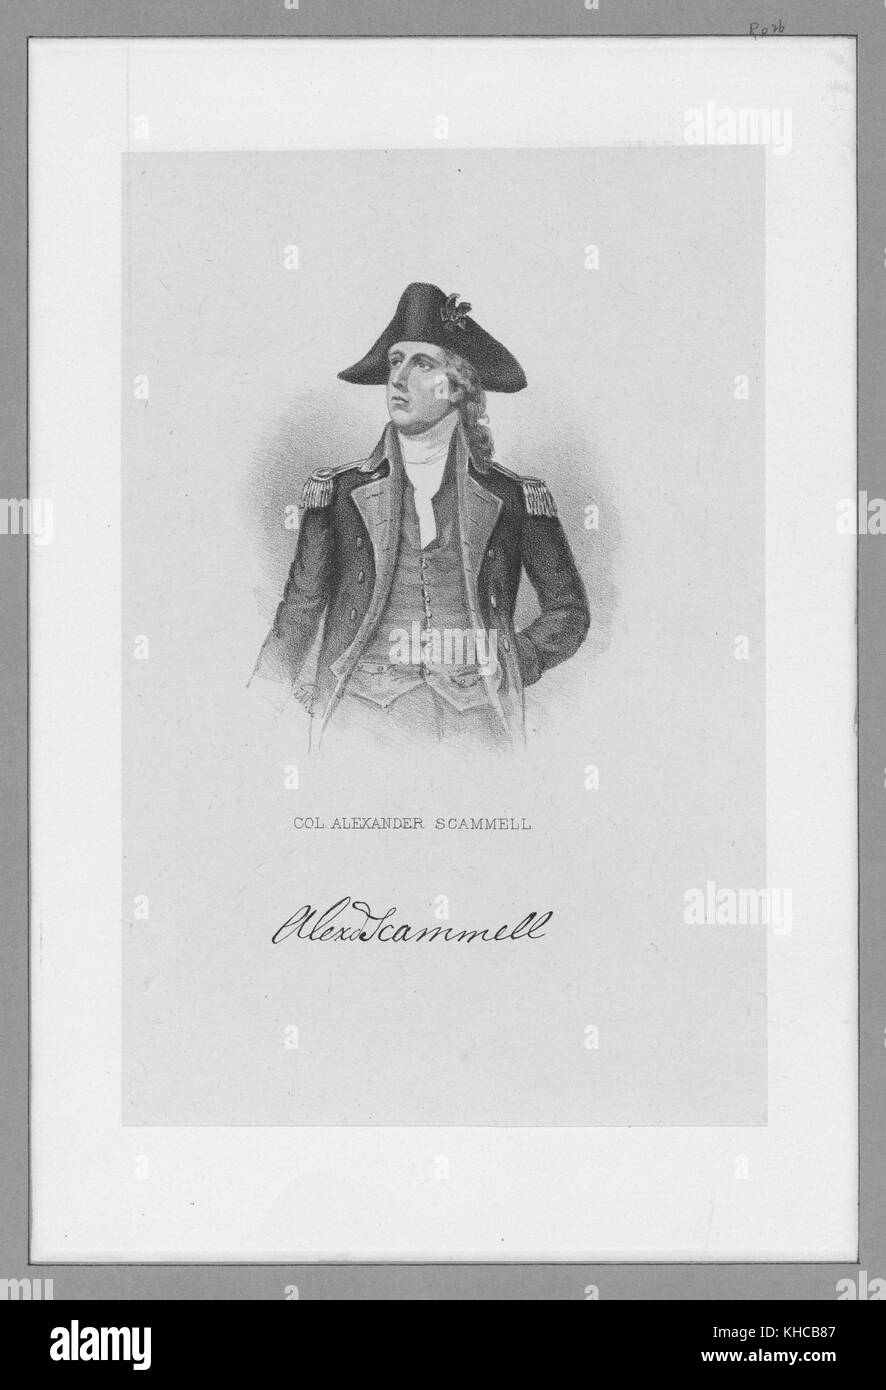 Engraved portrait of Colonel Alexander Scammell, officer in the Continental Army during the American Revolutionary - Stock Image